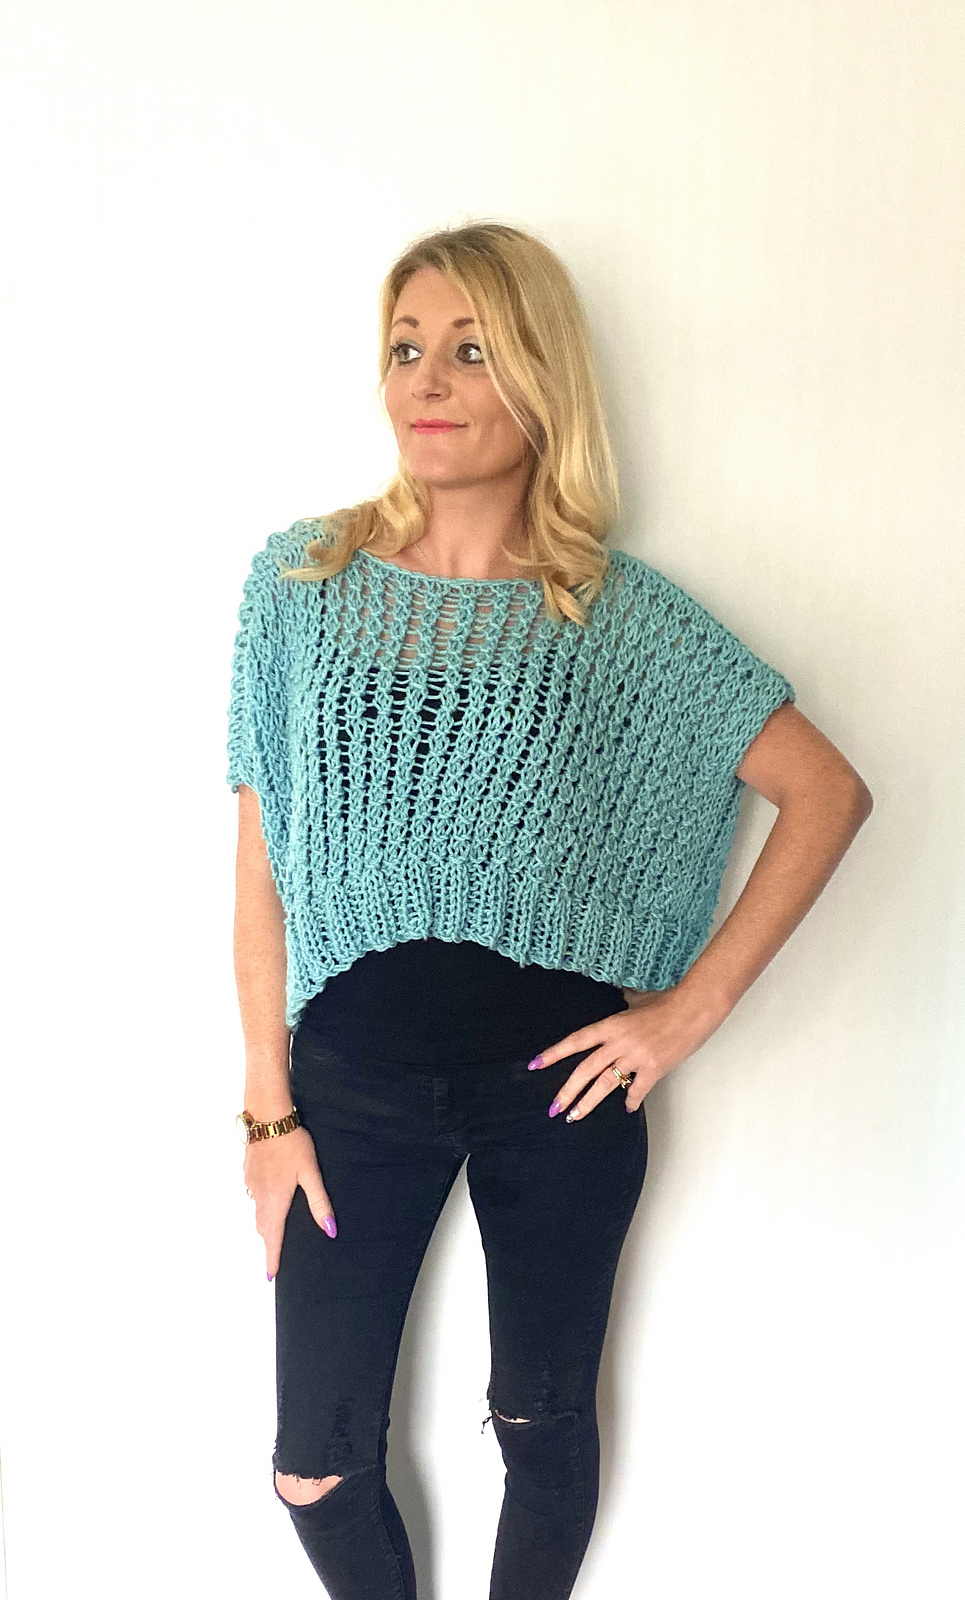 Knit a Lacy, Over-sized, Cropped Sweater For Summertime - Quick And Easy To Make!